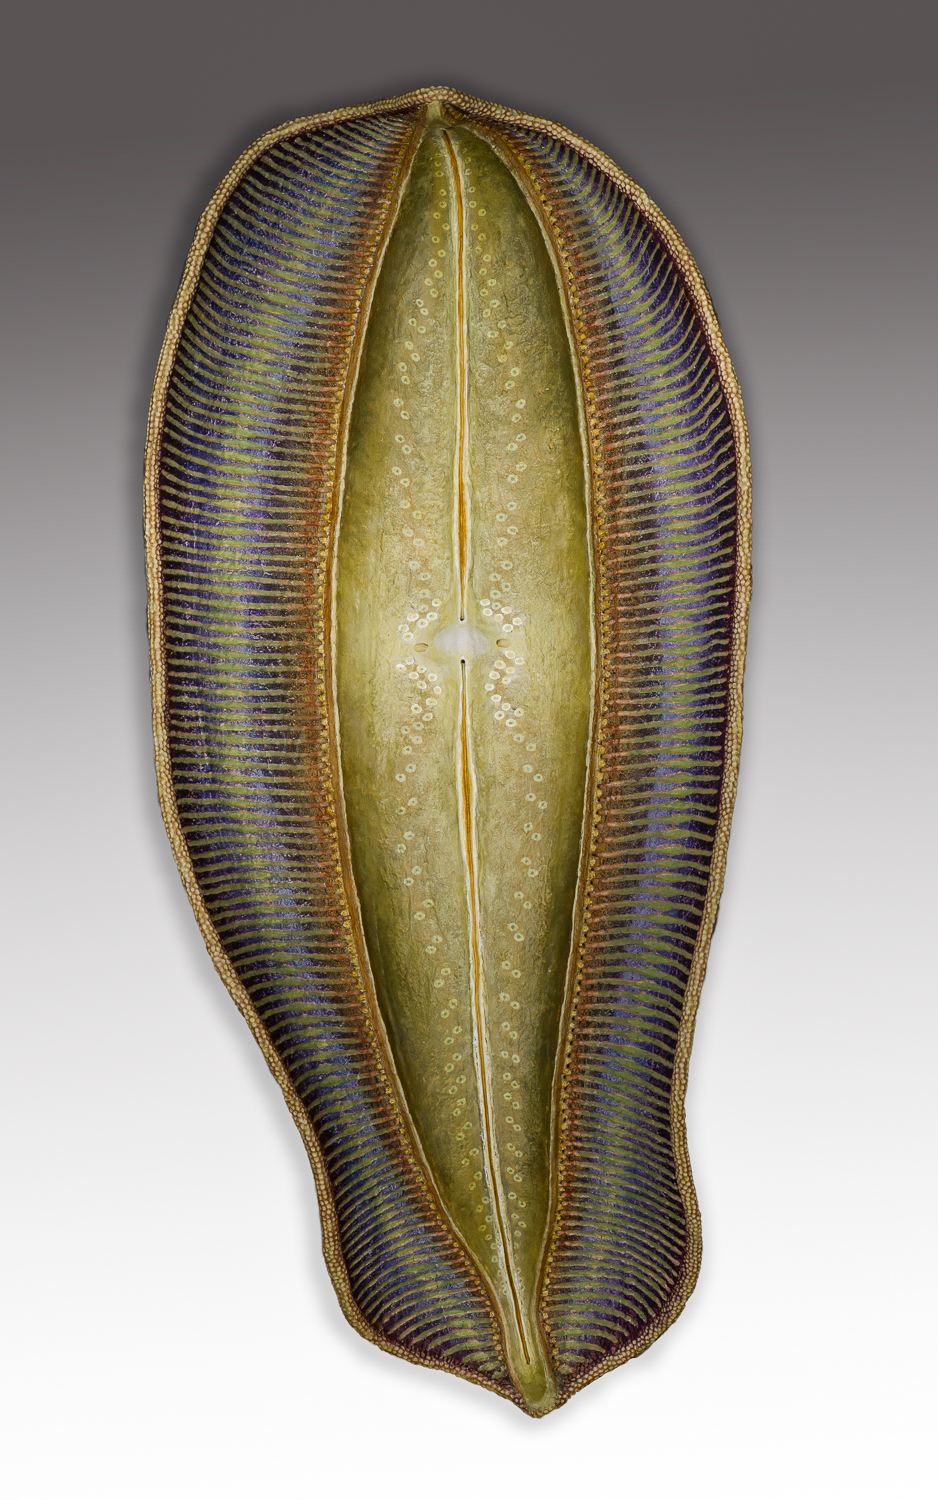 Diatom 6, 25.5 x 11.5 x 5 inches